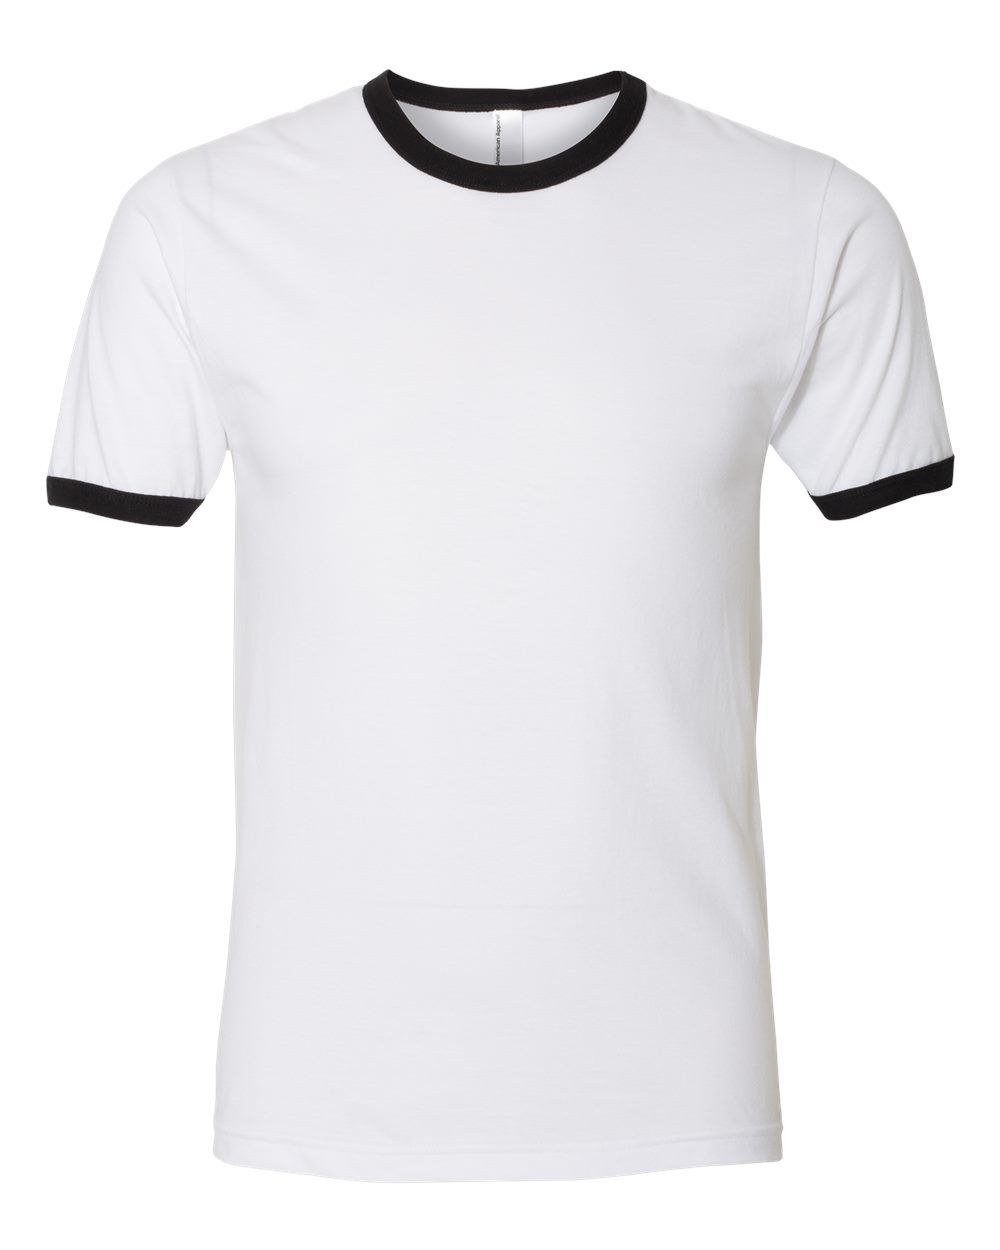 Download American Apparel Fine Jersey Ringer Tee 2410w American Apparel White And Black Online Shopping Clothes